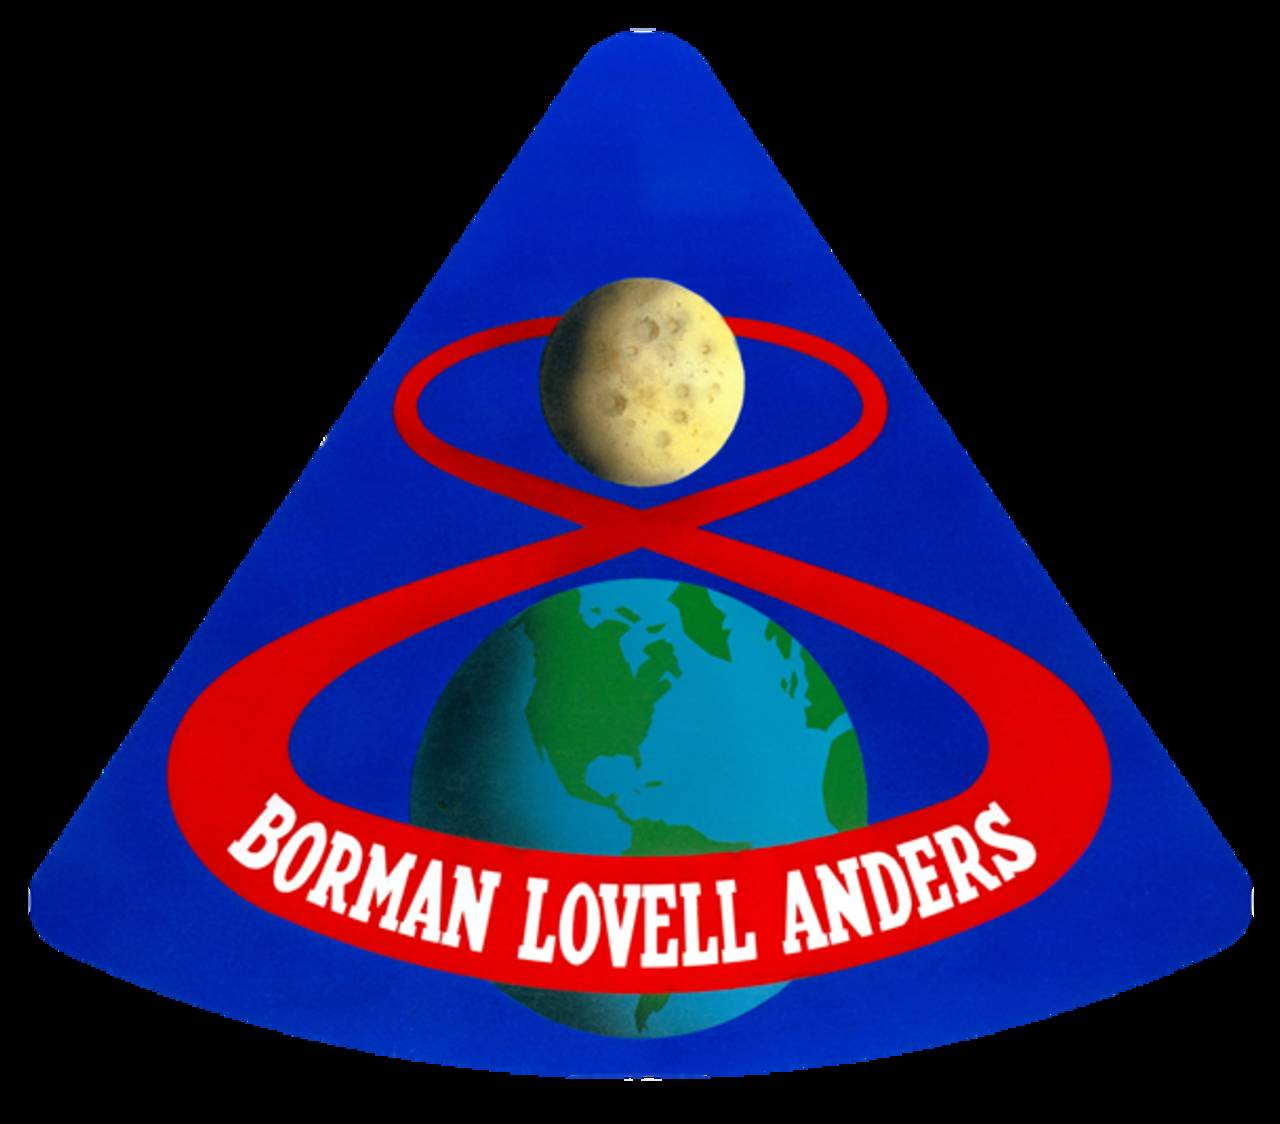 apollo8-patch_1560300879058.png